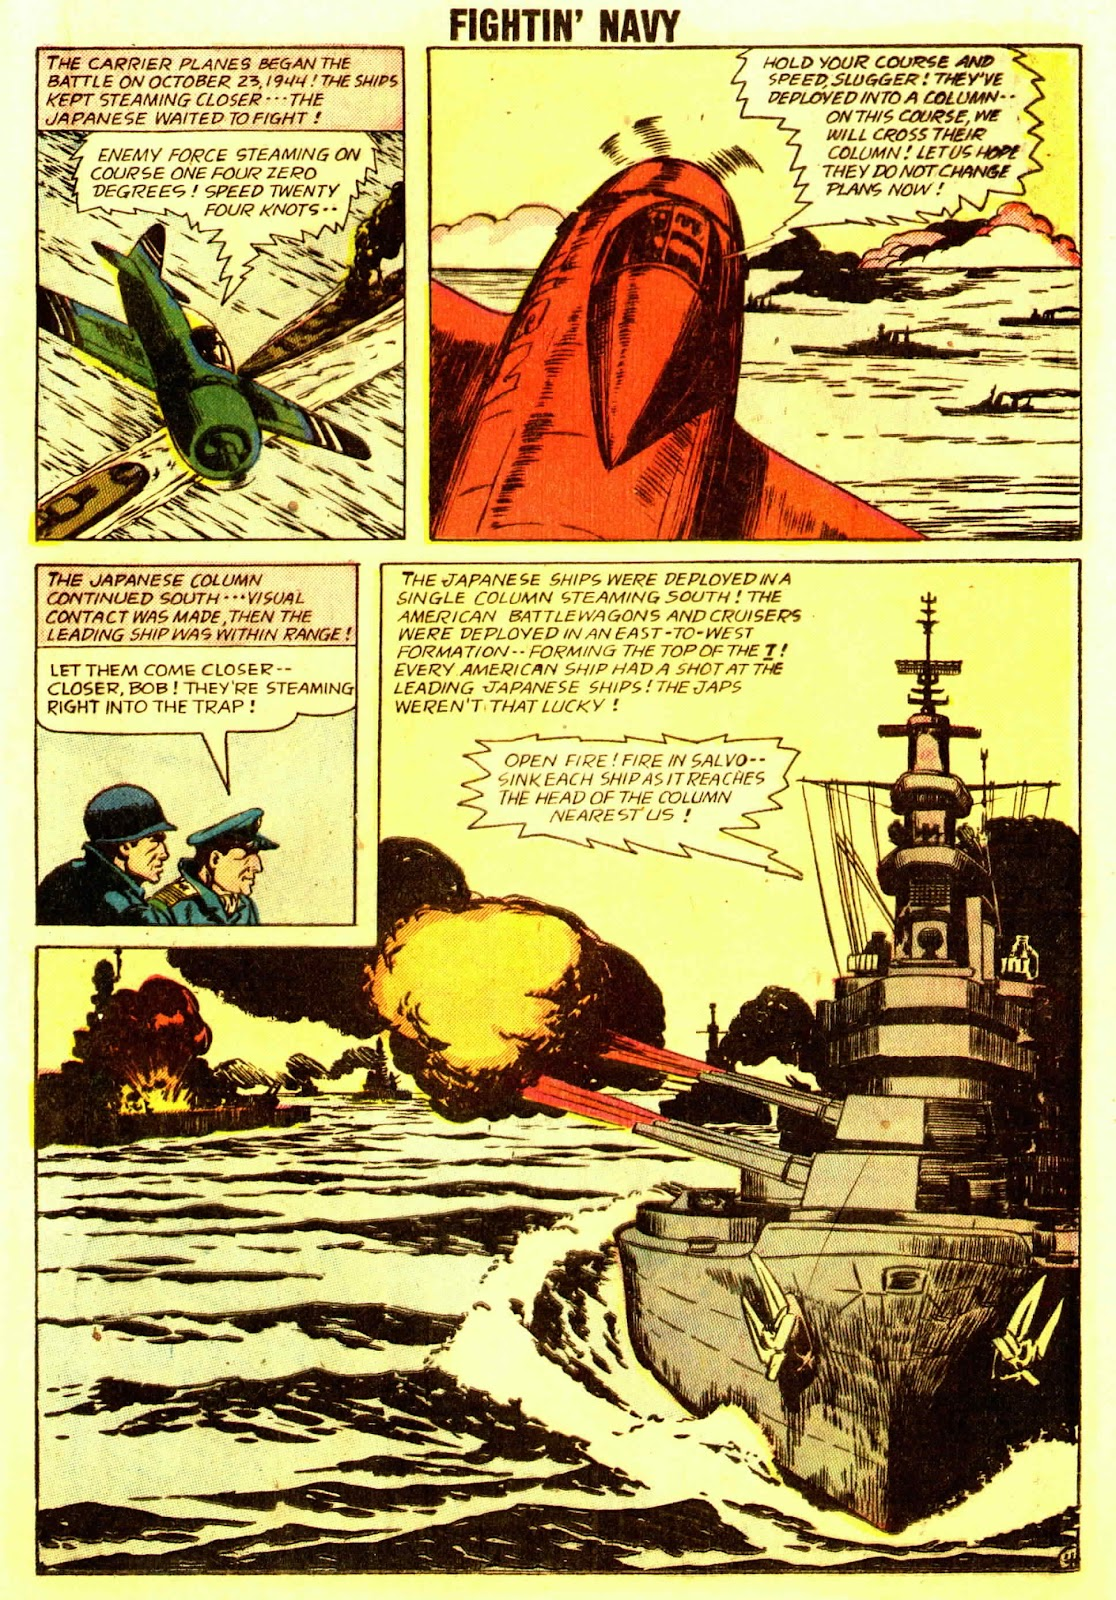 Read online Fightin' Navy comic -  Issue #83 - 23